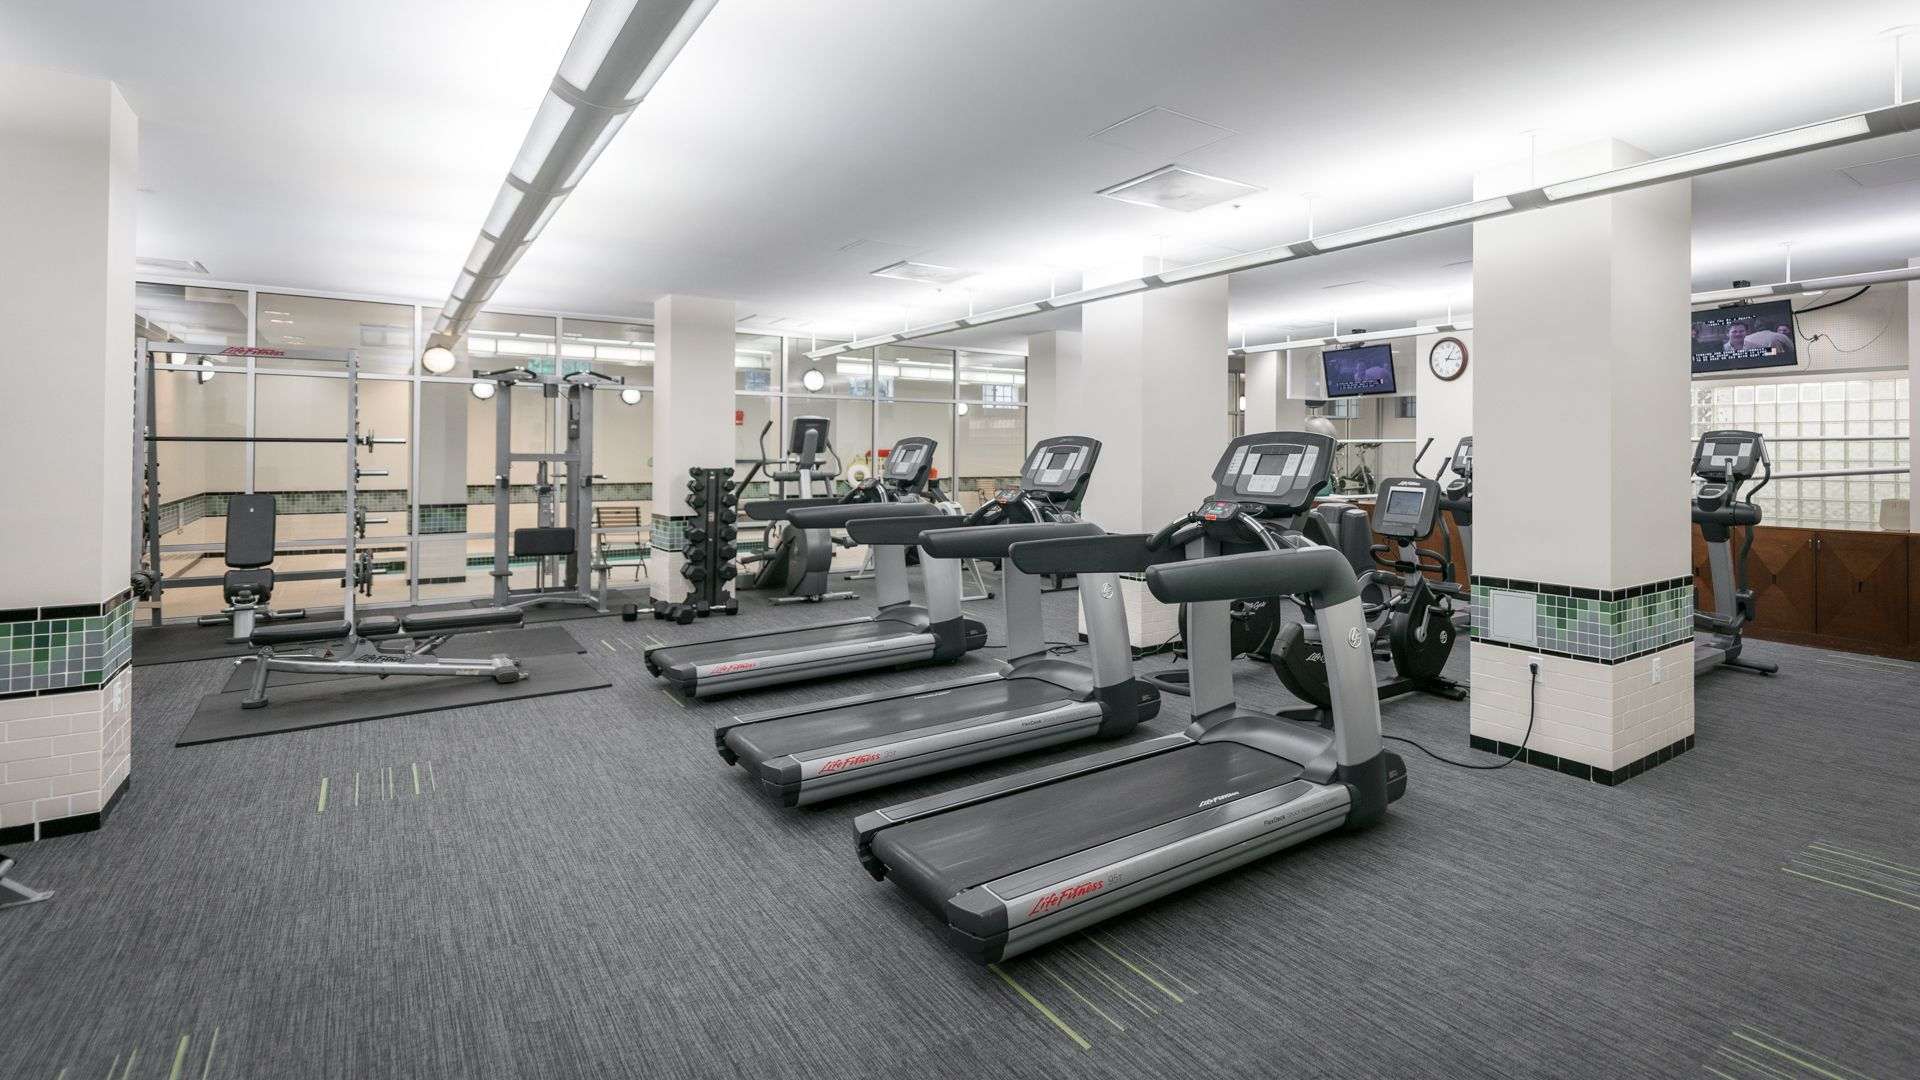 alban-towers-apartments-fitness-center.jpg